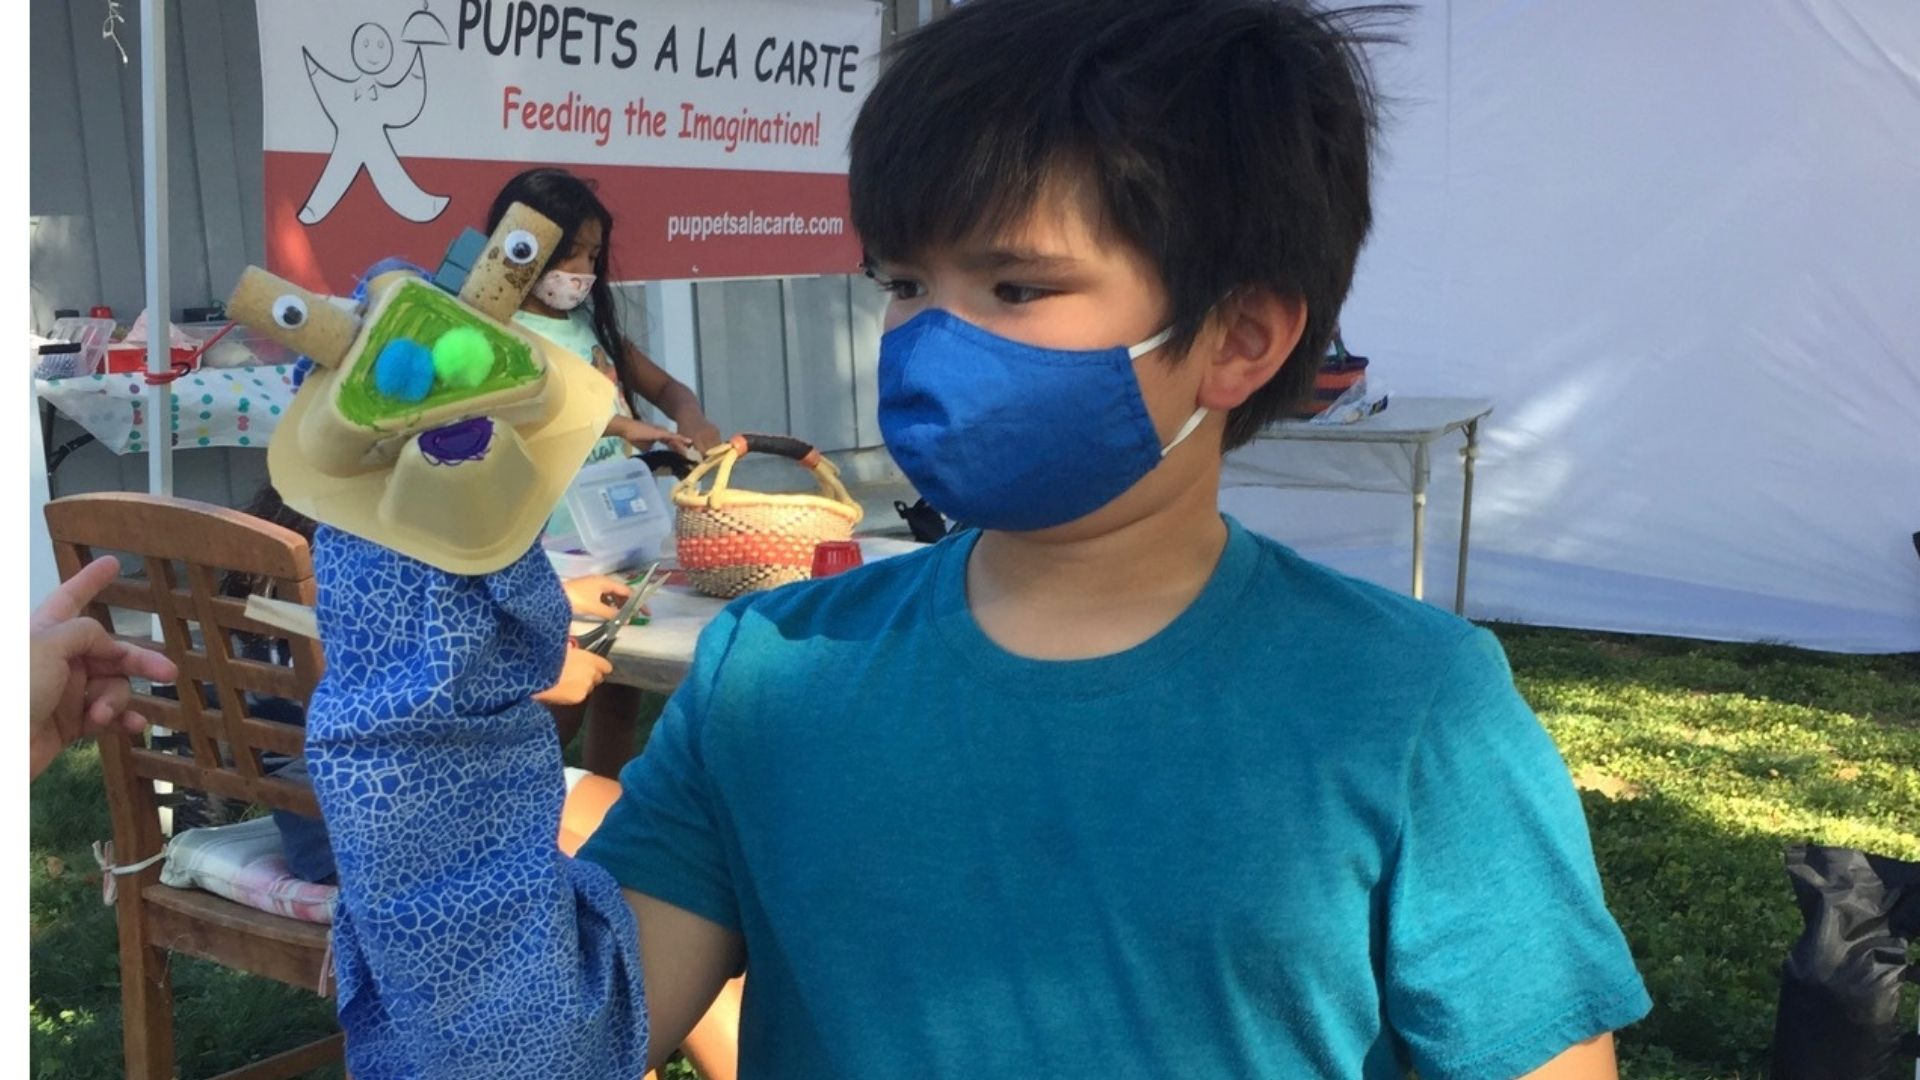 Child using puppet to express his imagination